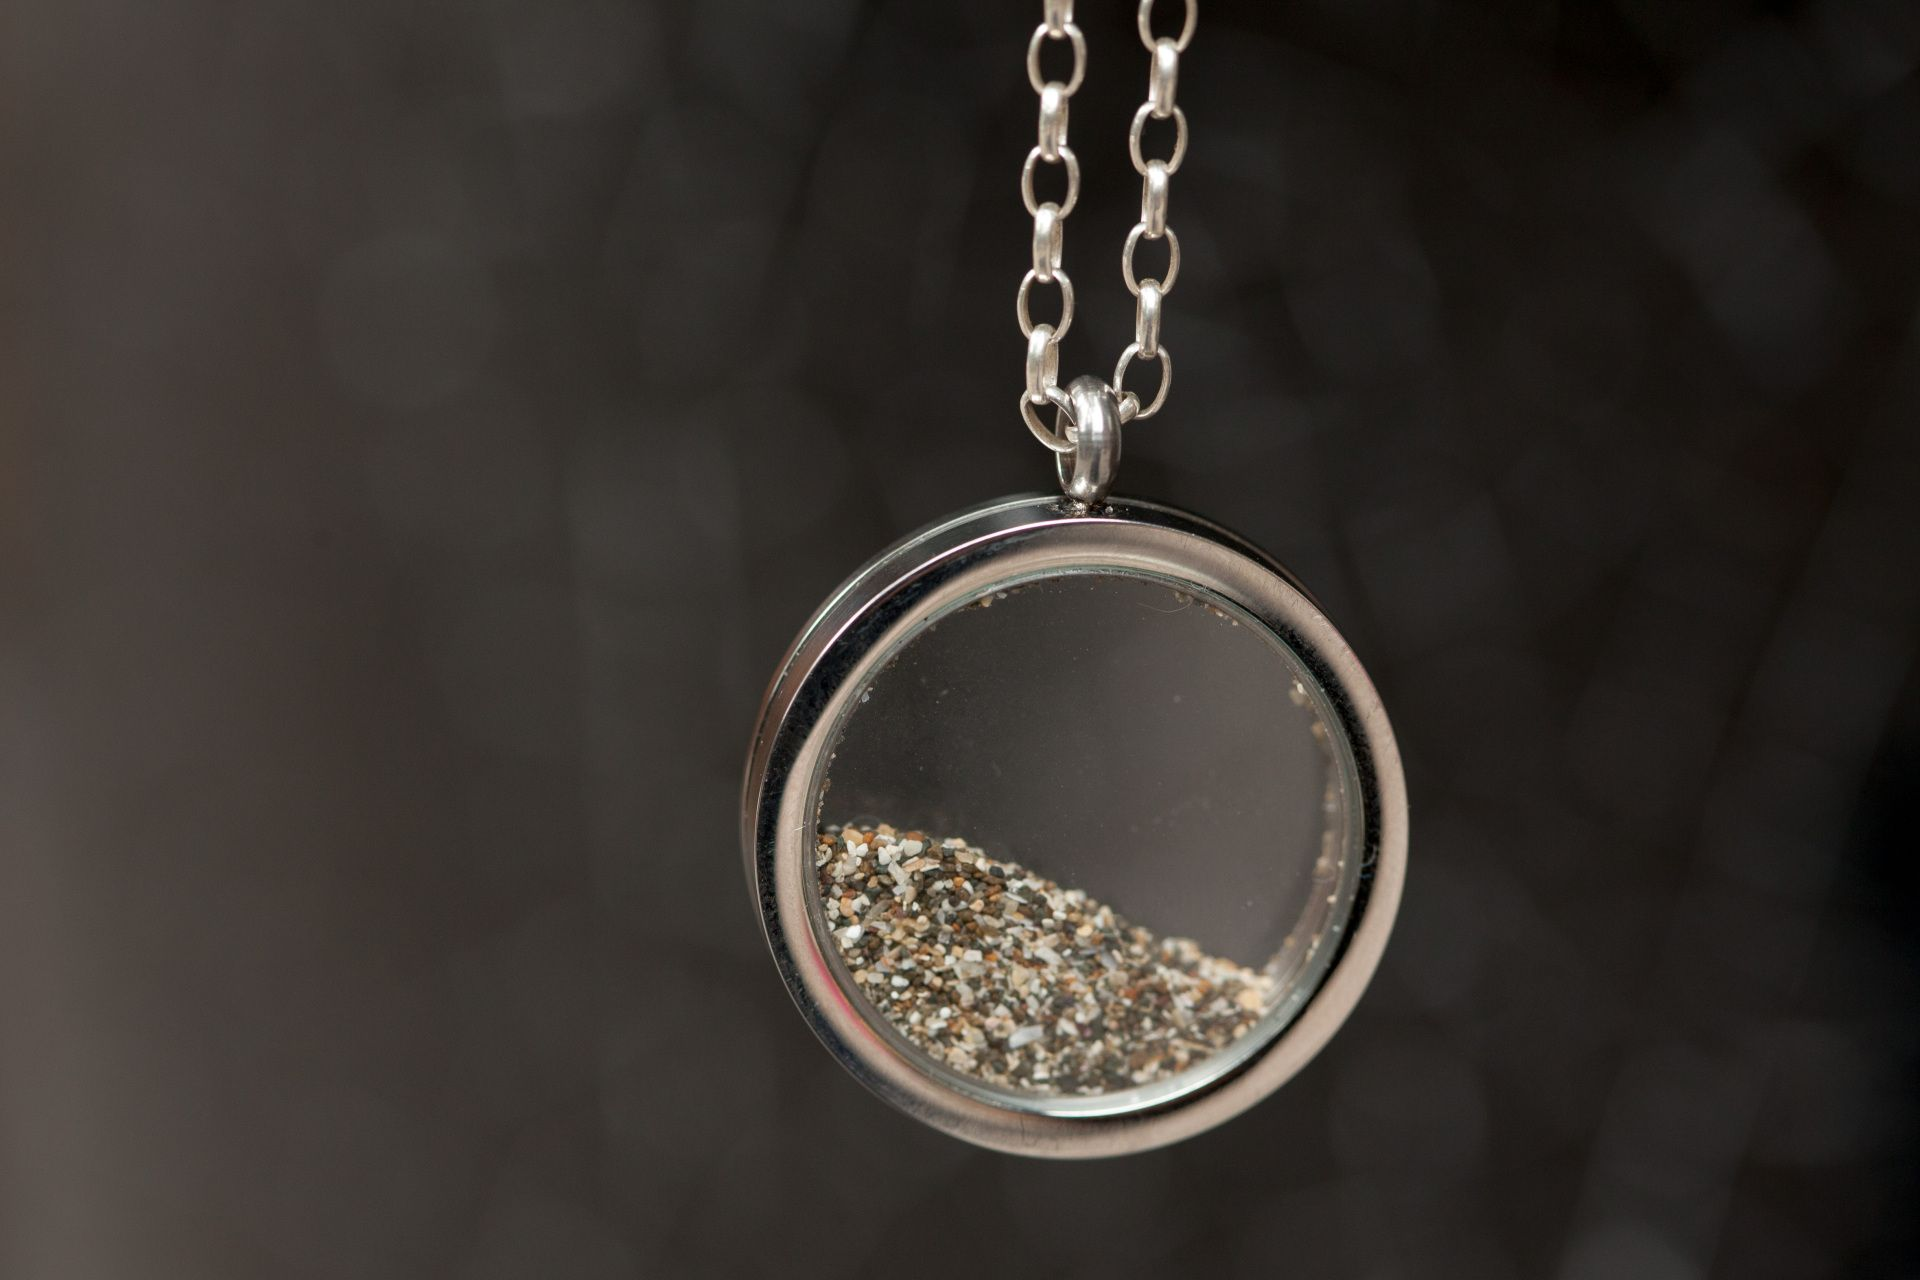 Sand locket (With images) Floating lockets necklaces